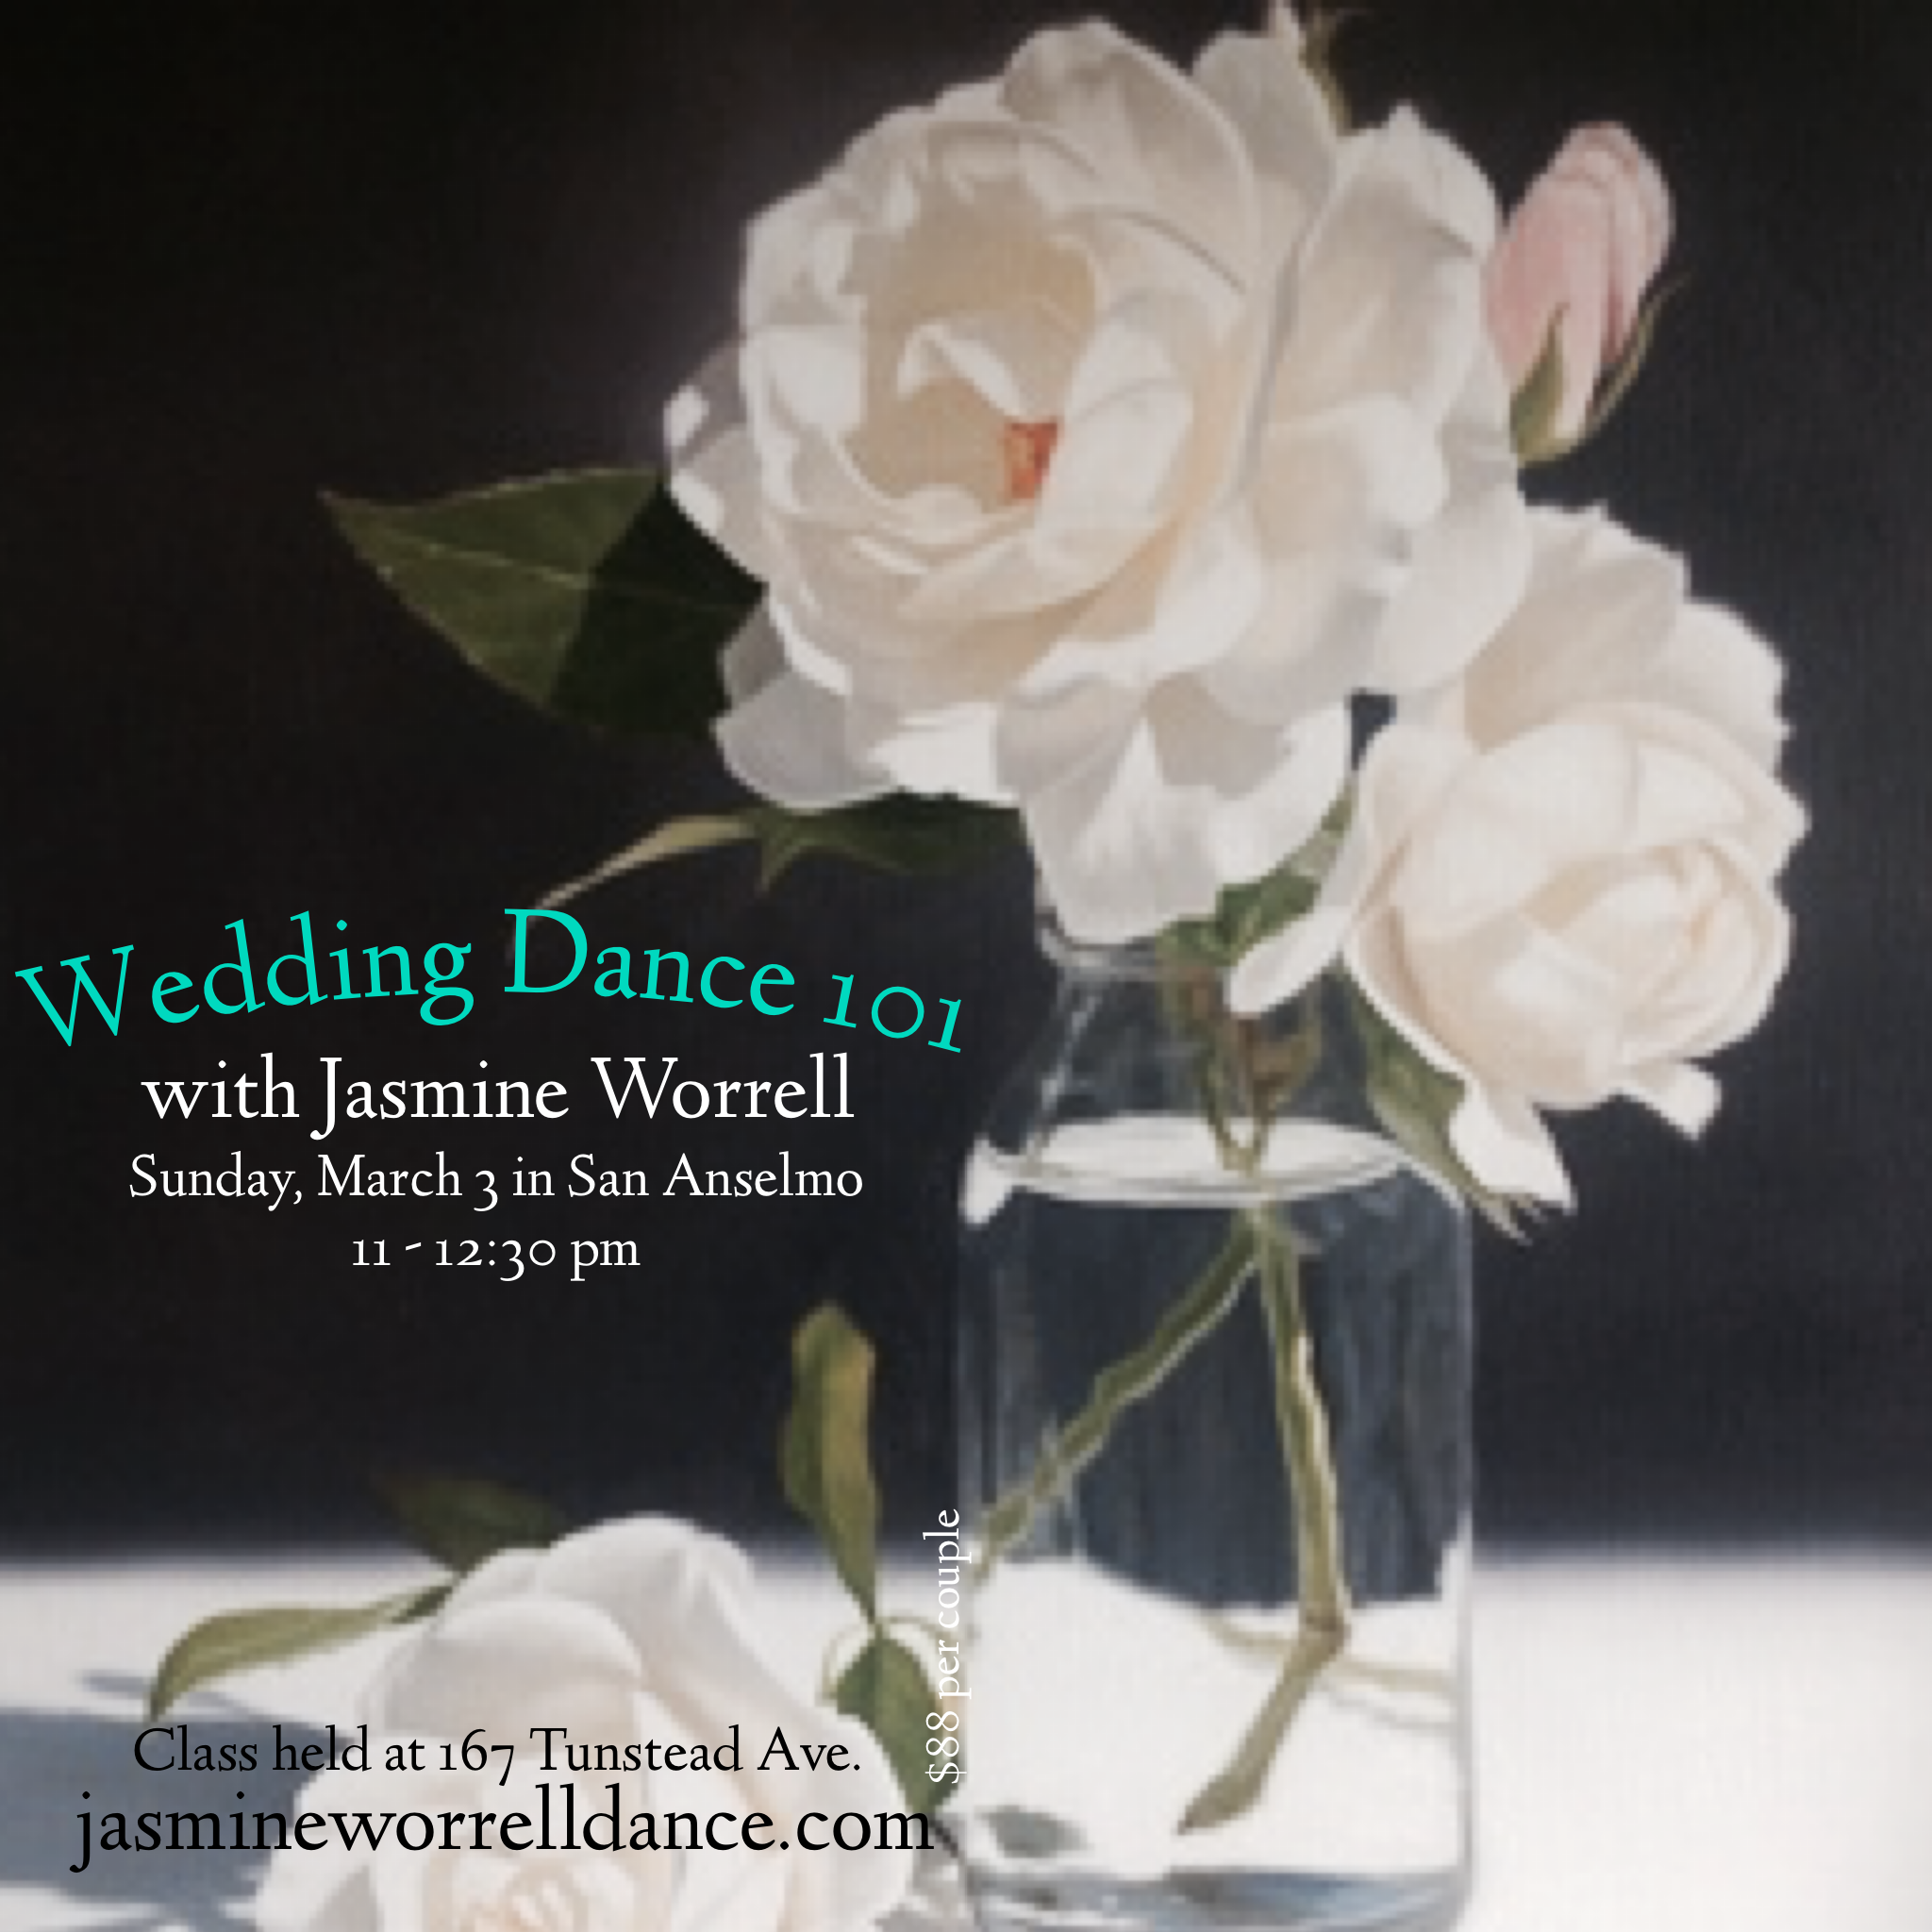 Learn how to dance with grace and confidence - Specializing in 2 left feet! You don't need any dance experience to smash a first dance. Join Jasmine in a fun and open dance class just for those looking to rock their wedding dance with simple, graceful dance moves. Perfect for anyone who want a traditional and romantic or more contemporary style wedding dance.$88 per couple at the door or Early Bird Discount here.